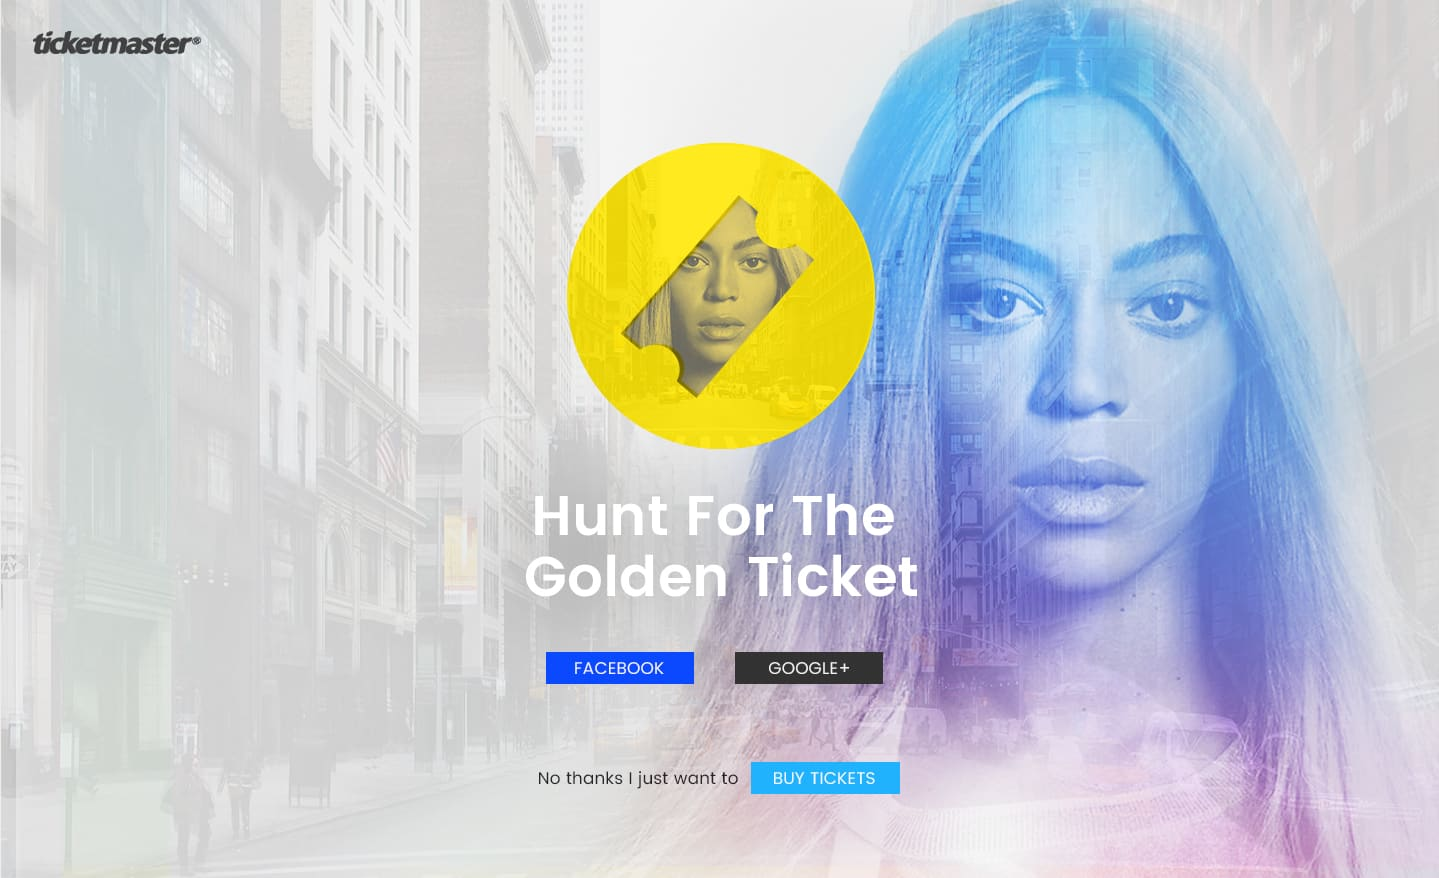 Ticketmaster: Hunt for the Golden Ticket